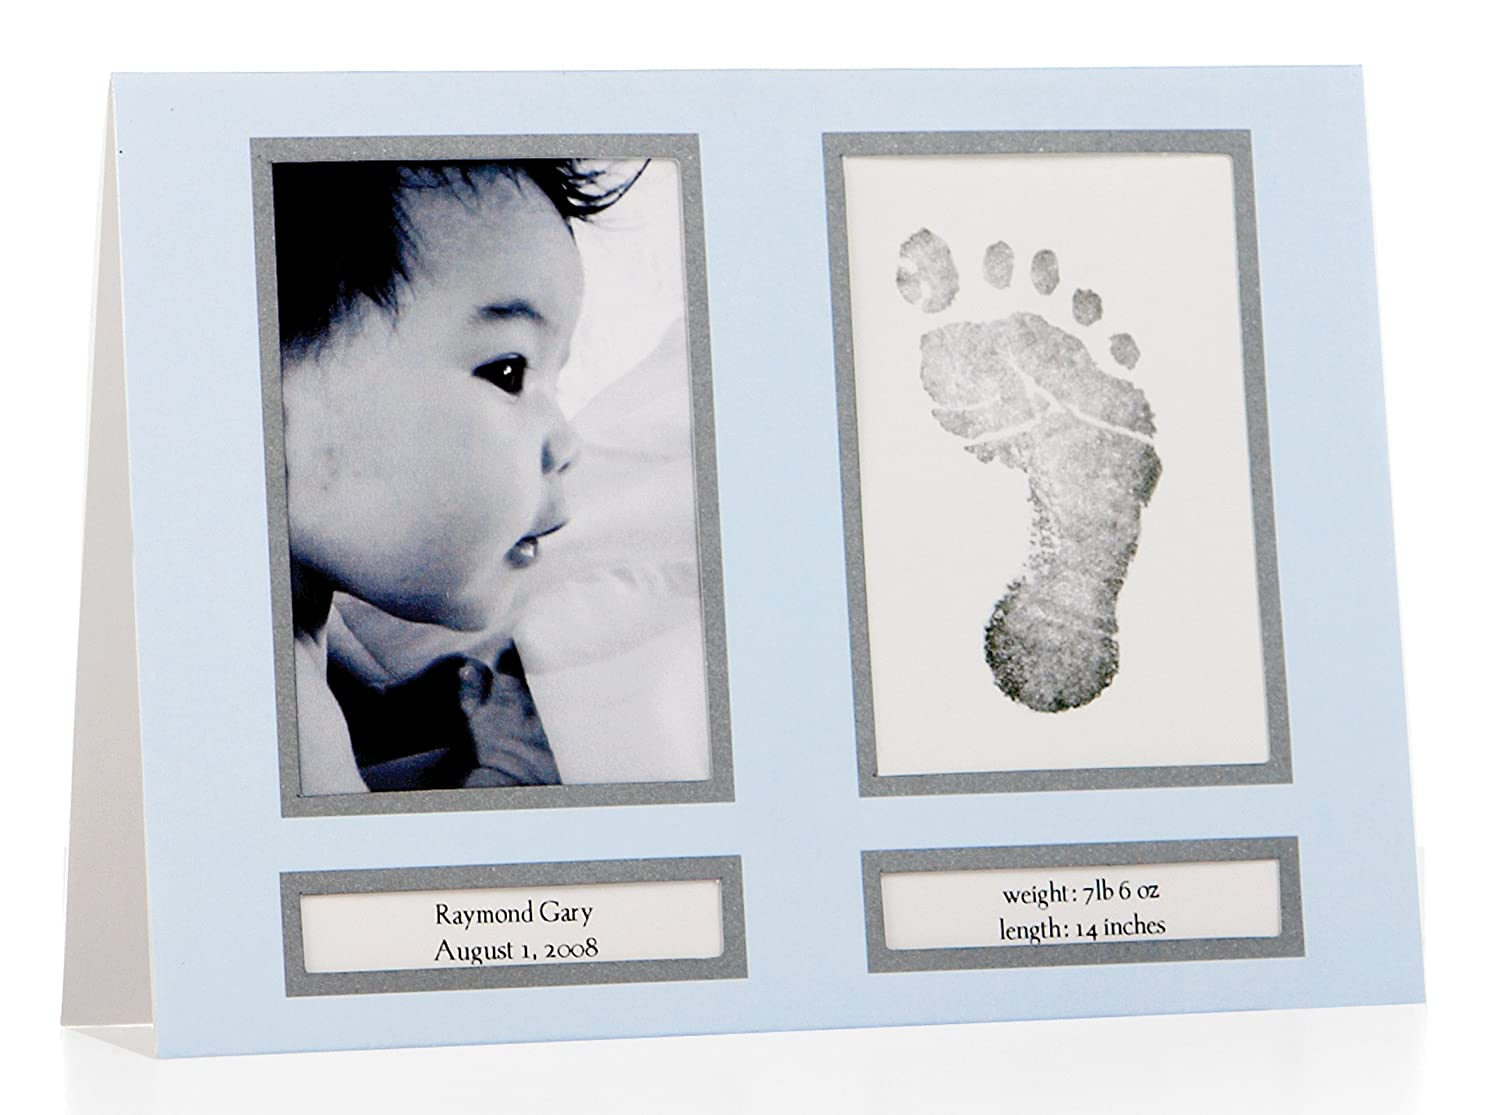 Pearhead 60010 - Babyprints Birth Announcement - Geburtskarten blau